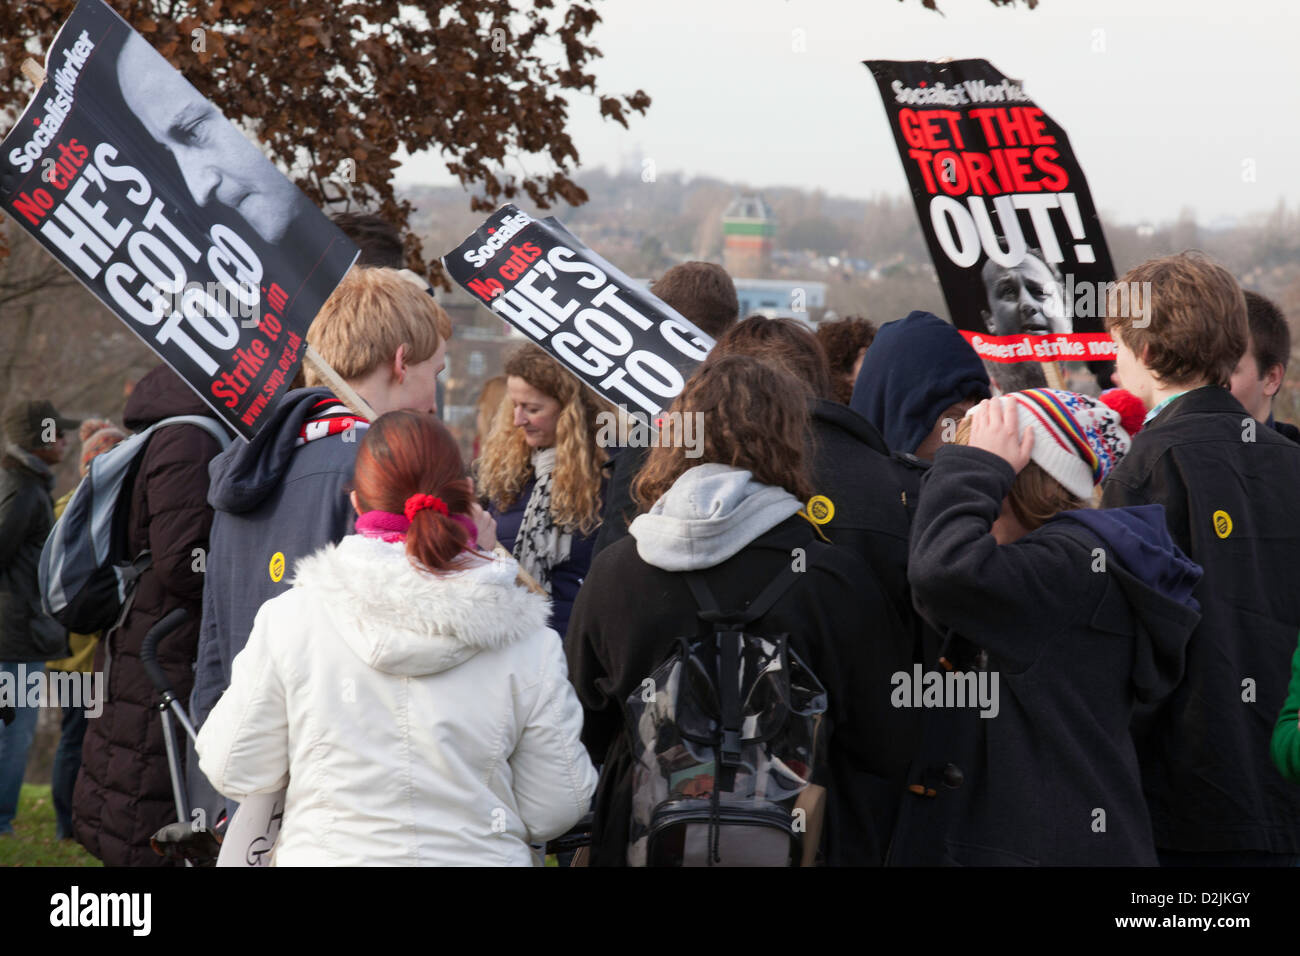 Protesters holding banners against the closure of Lewisham hospital and job cuts ,at the end of the march from Lewisham - Stock Image